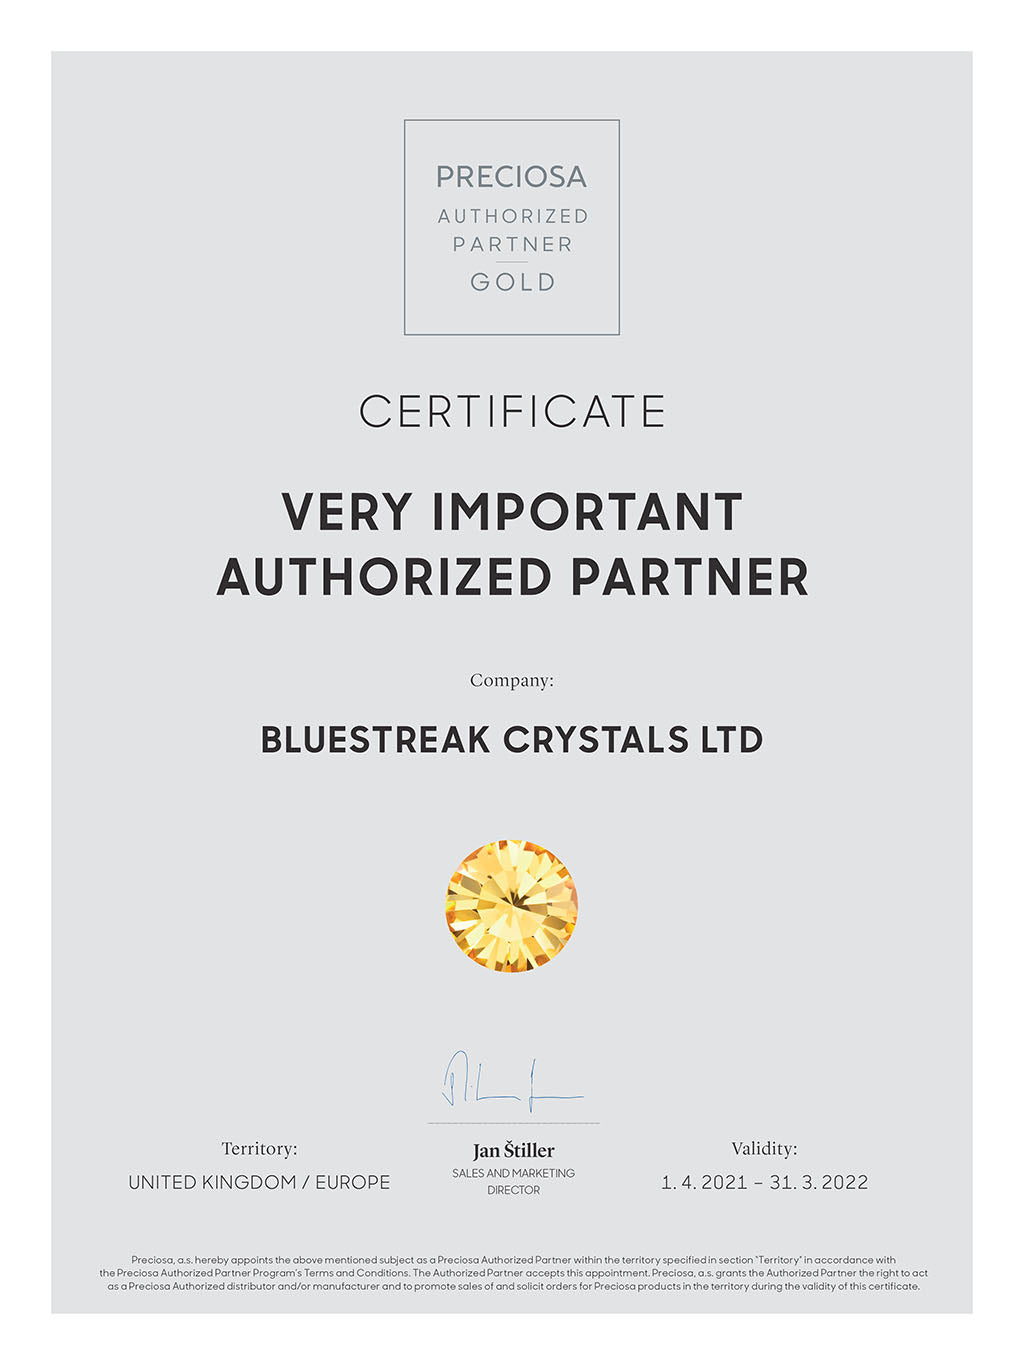 Bluestreak crystals is a gold authorised partner for Preciosa crystals where you can choose from the largest range of Preciosa beads and crystals at bluestreak crystals worldwide